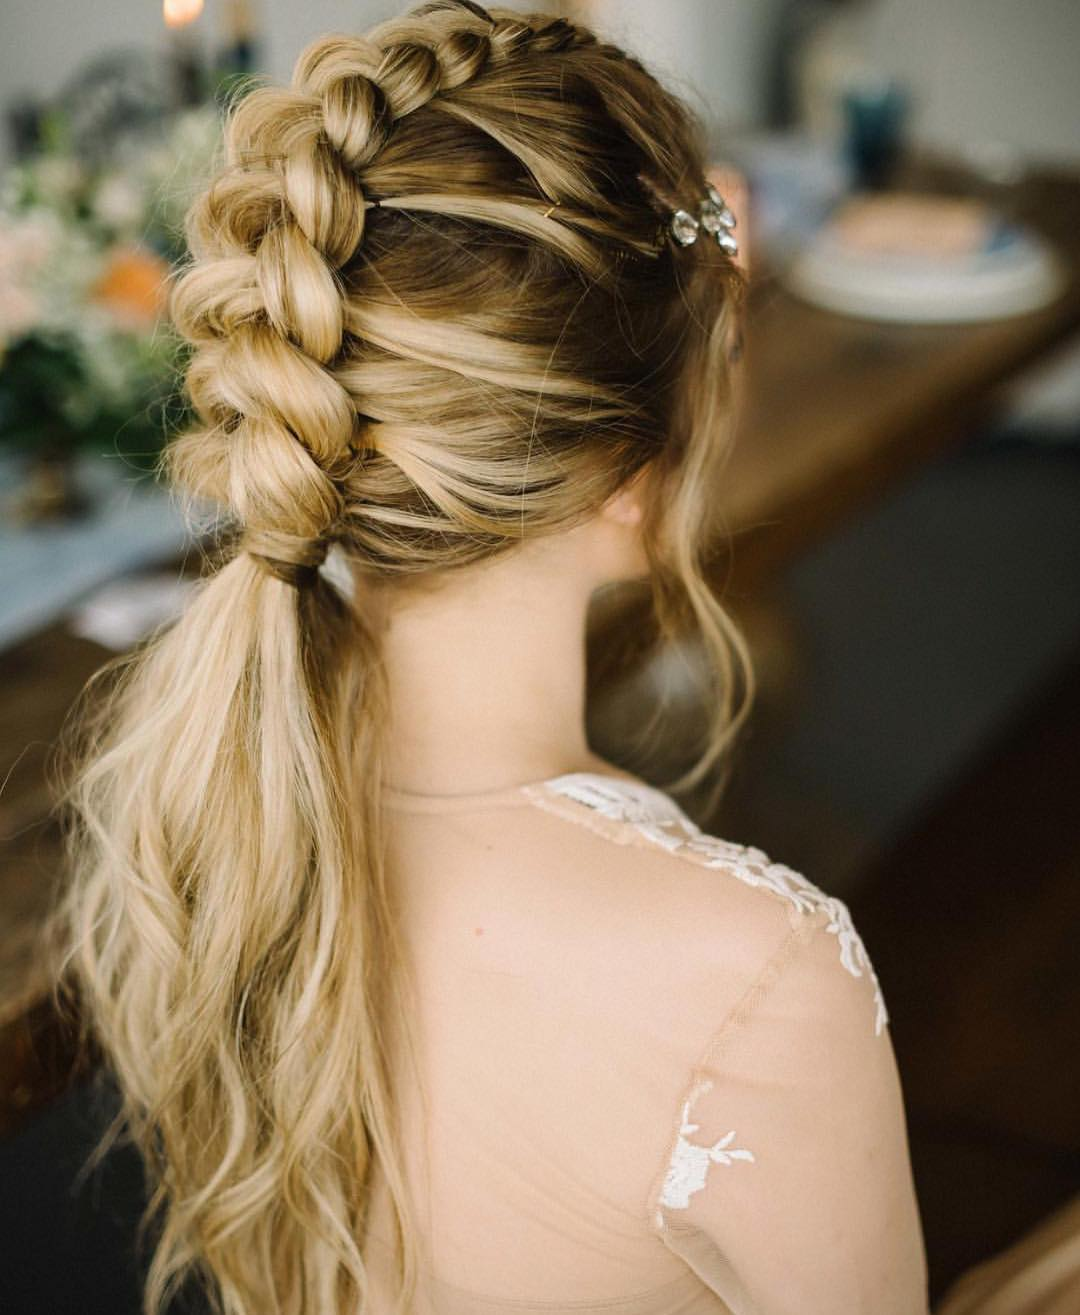 Wedding New Hair Style: 10 Braided Hairstyles For Long Hair